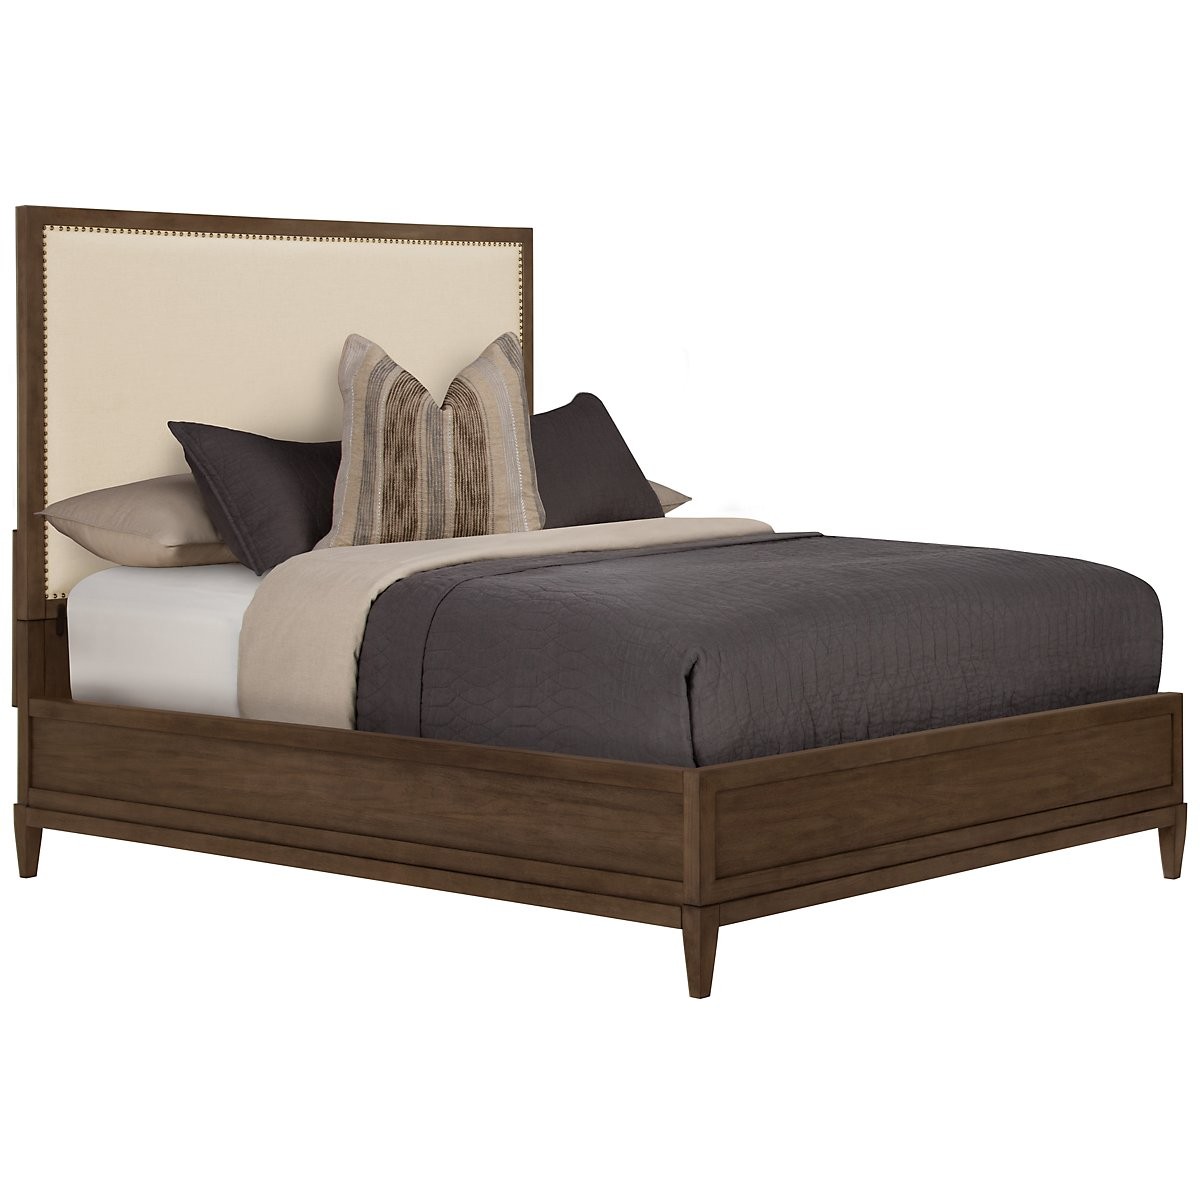 Preston Mid Tone Upholstered Platform Bed